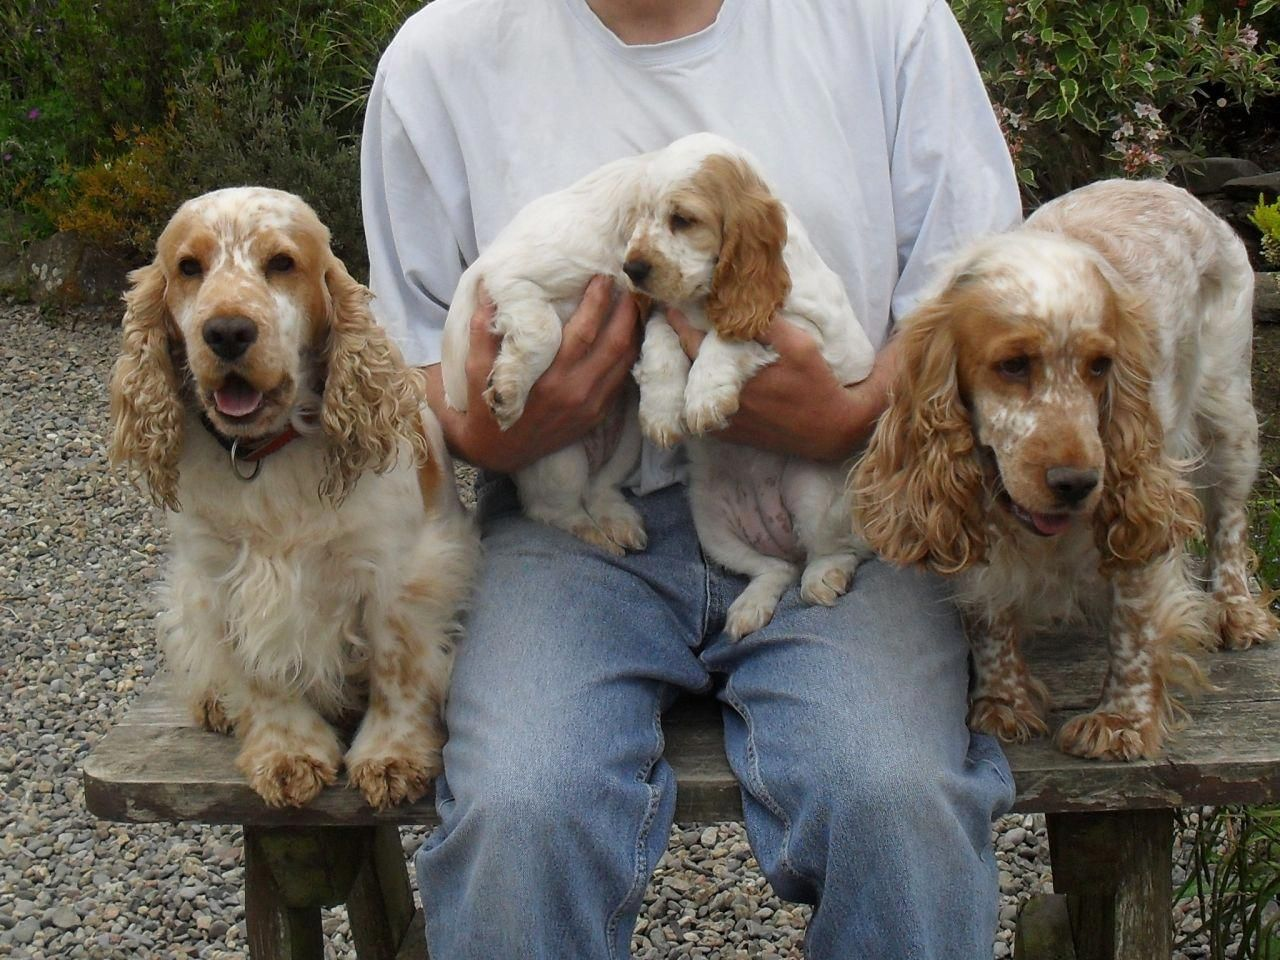 Ship From Gfp Shipping Puppies Greenfield Puppies Spaniel Puppies Cocker Spaniel Puppies English Cocker Spaniel Puppies